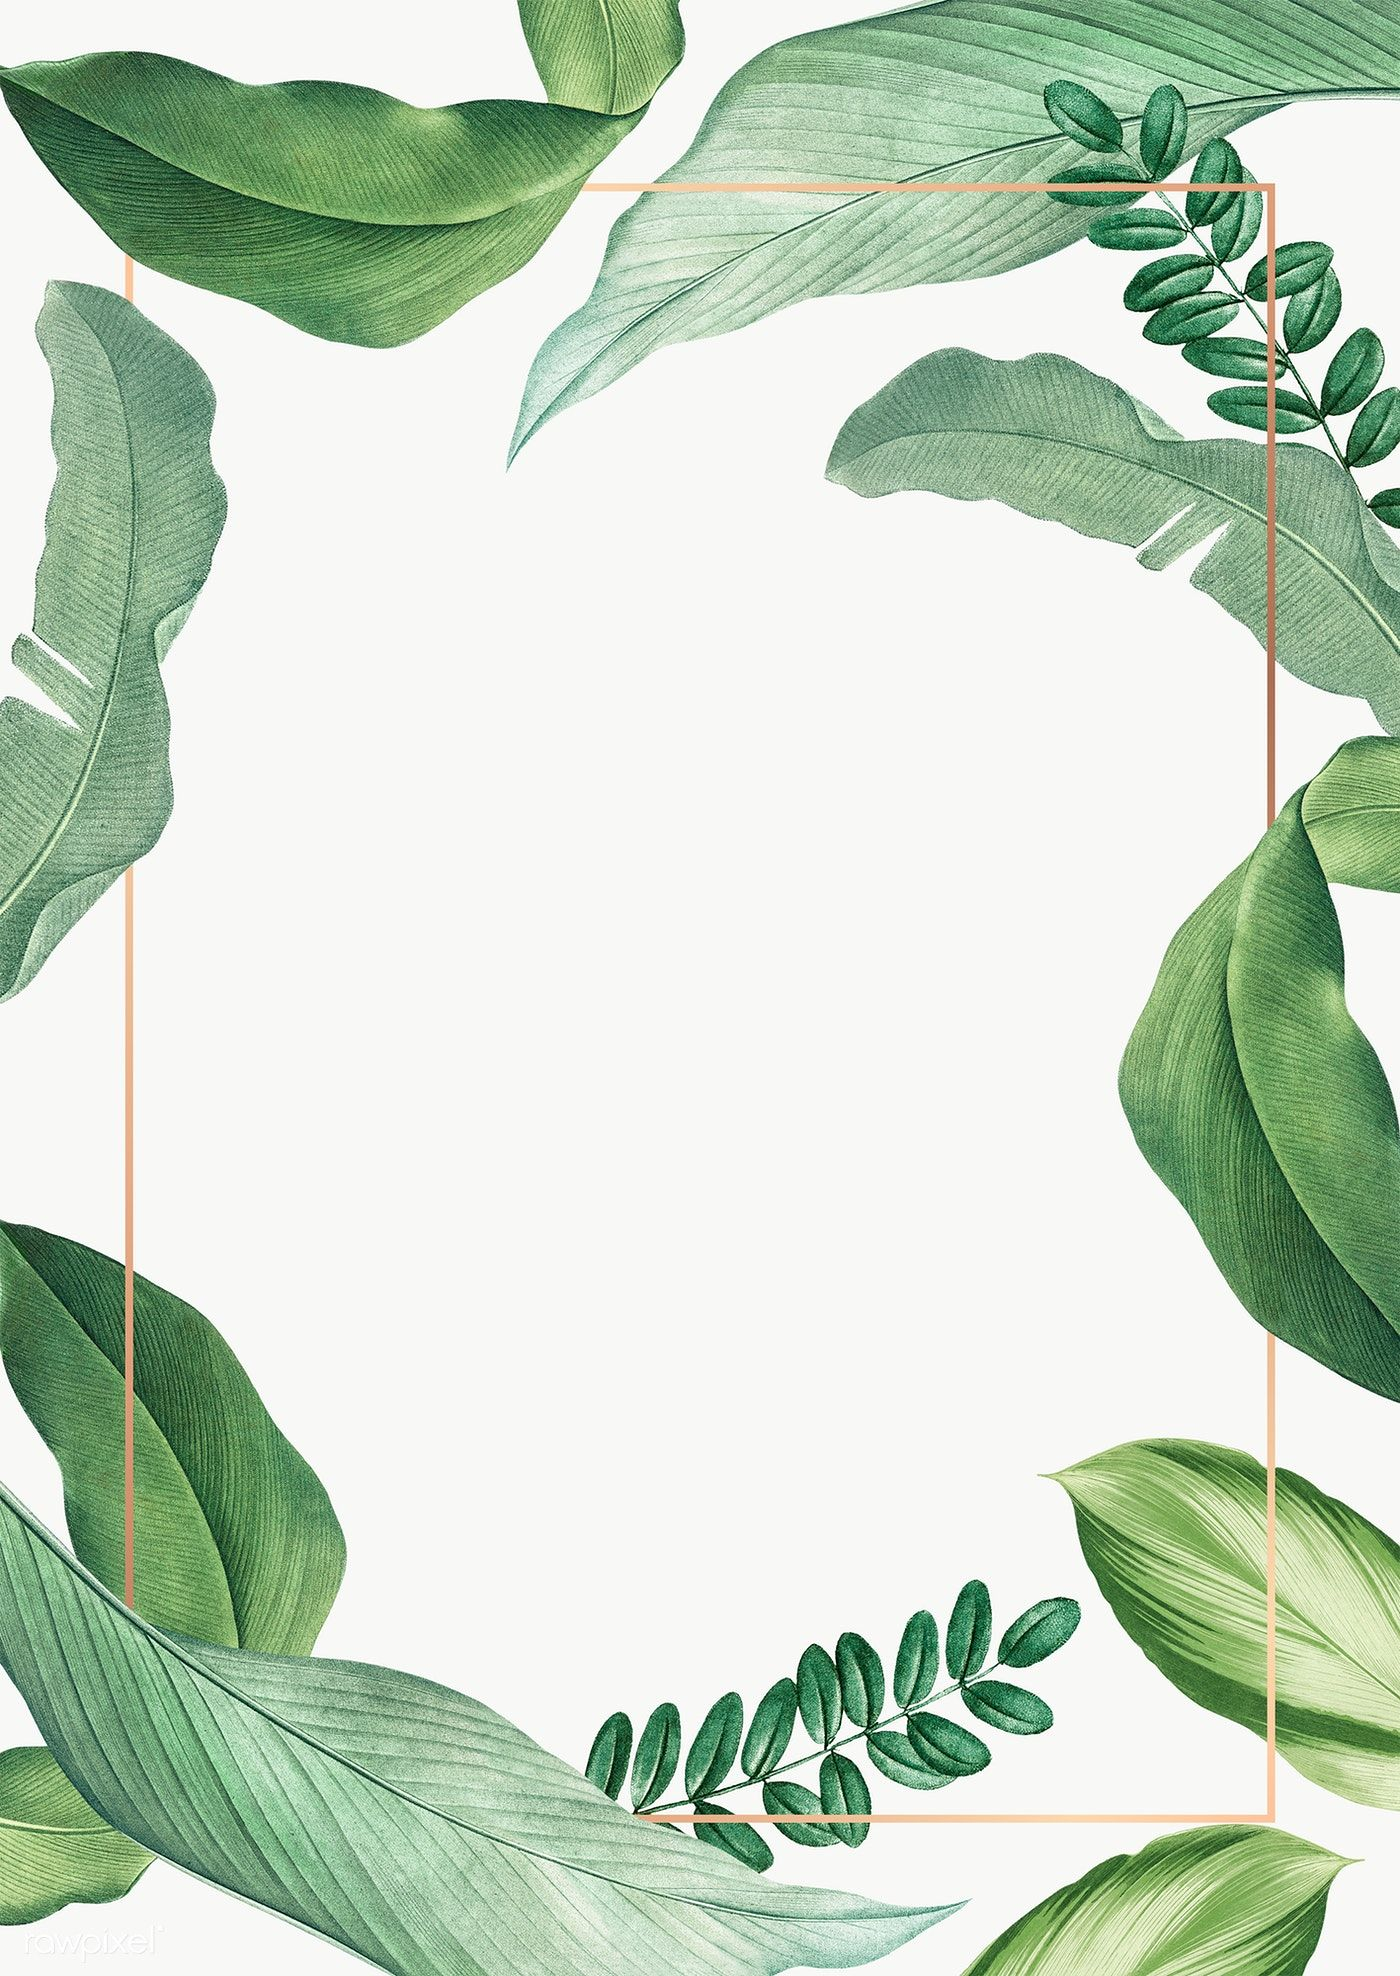 "Hand Drawn Tropical Leaves White Poster Transparent Png Free Image By Rawpixel Com À¹ƒà¸šà¹""ม À¸š À¸•à¸£à¹€à¸Š À¸à¸£ À¸§à¸¡à¸‡à¸²à¸™à¹à¸• À¸‡à¸‡à¸²à¸™ À¸à¸²à¸žà¸›à¸£à¸°à¸à¸à¸š We upload amazing new content everyday! hand drawn tropical leaves white poster"